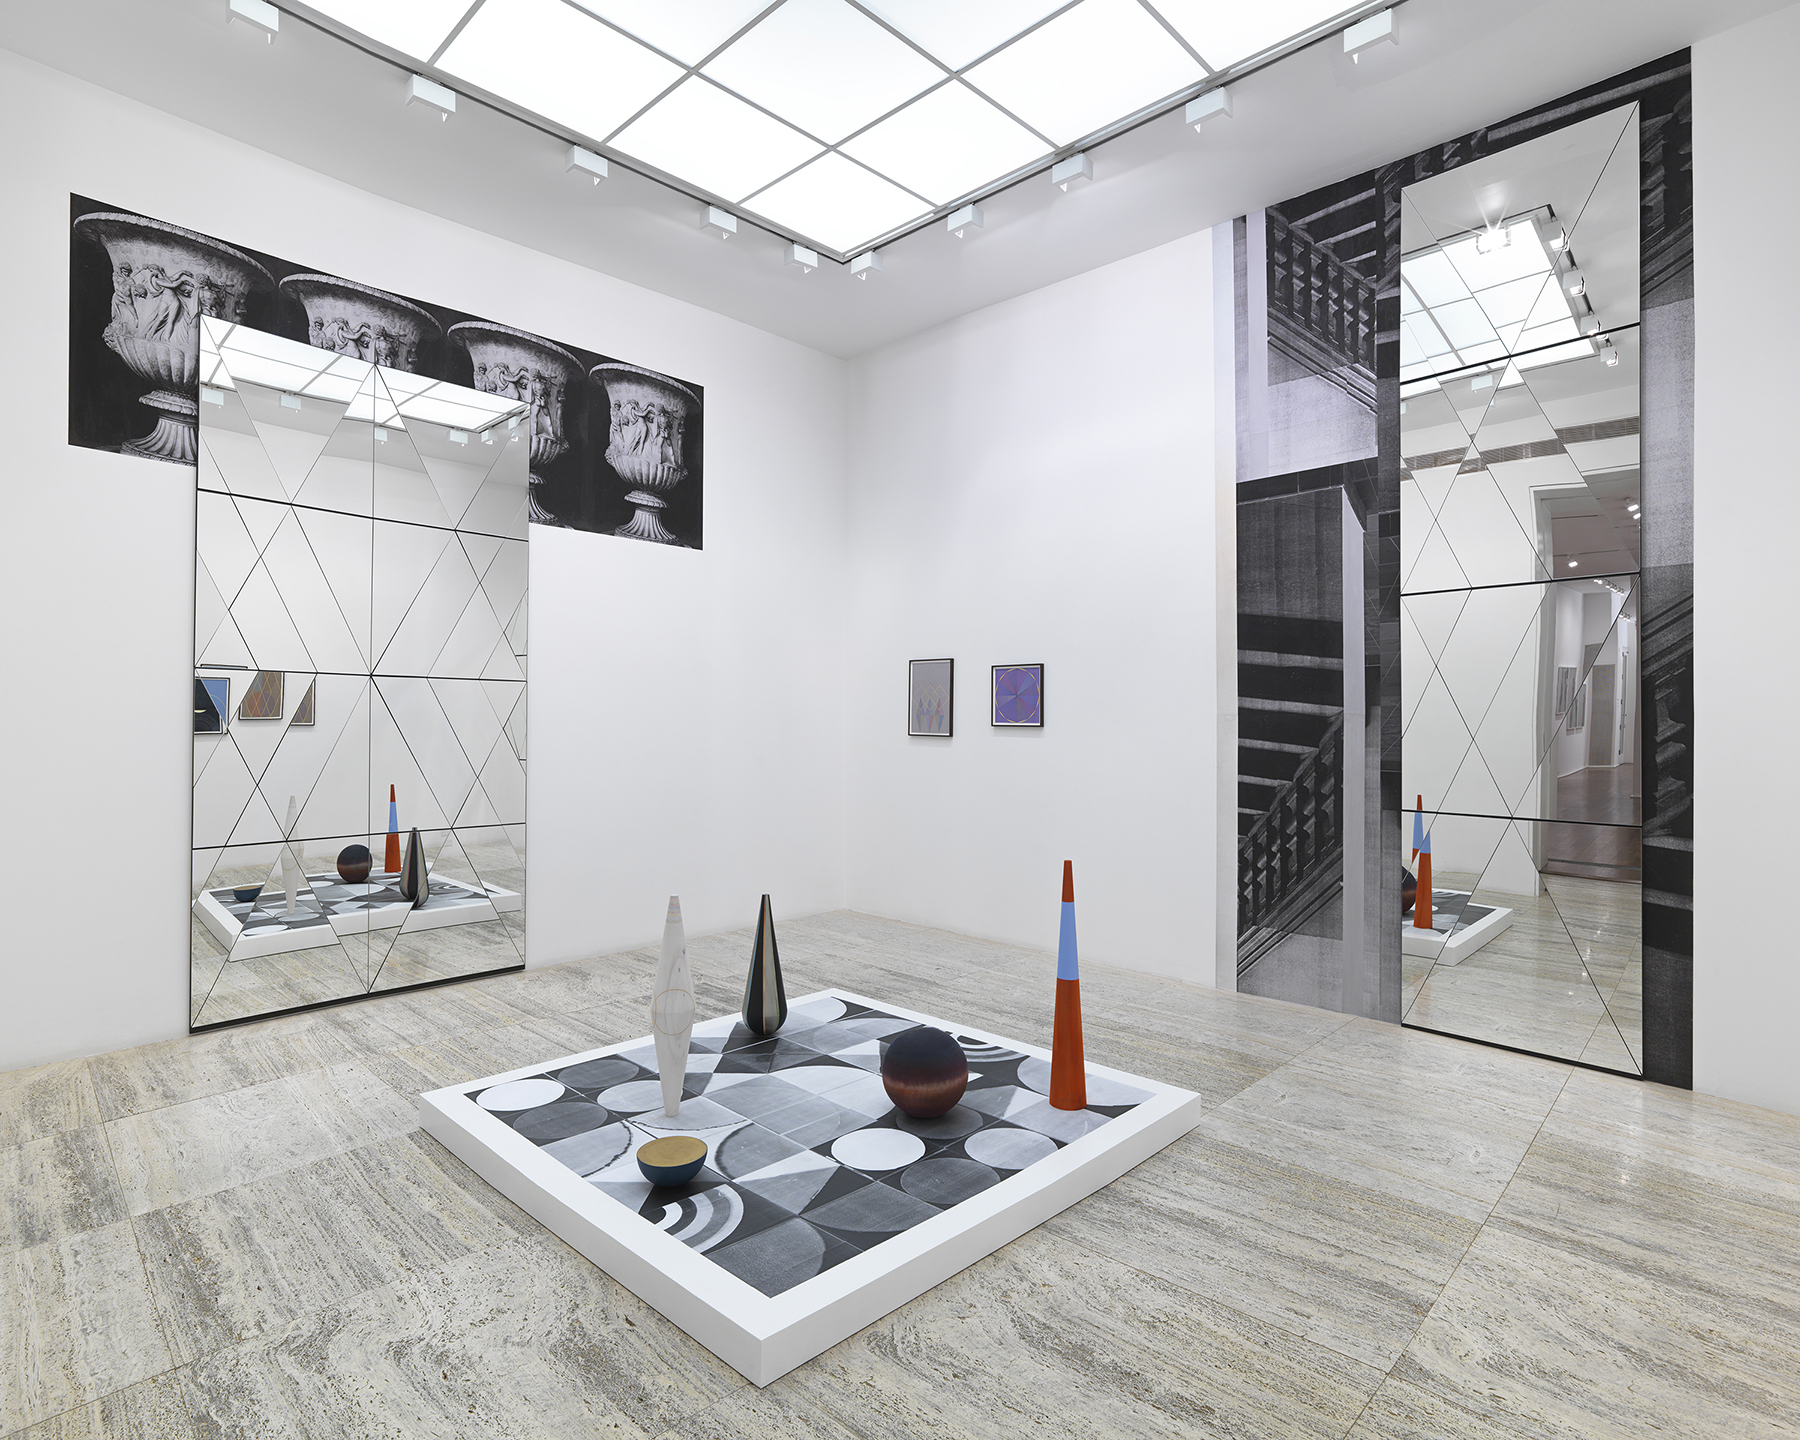 Claudia Wieser, Installation from Passing Leap, Hauser and Wirth, New York, 2015. Courtesy The Artist and Marianne Boesky Gallery (1)